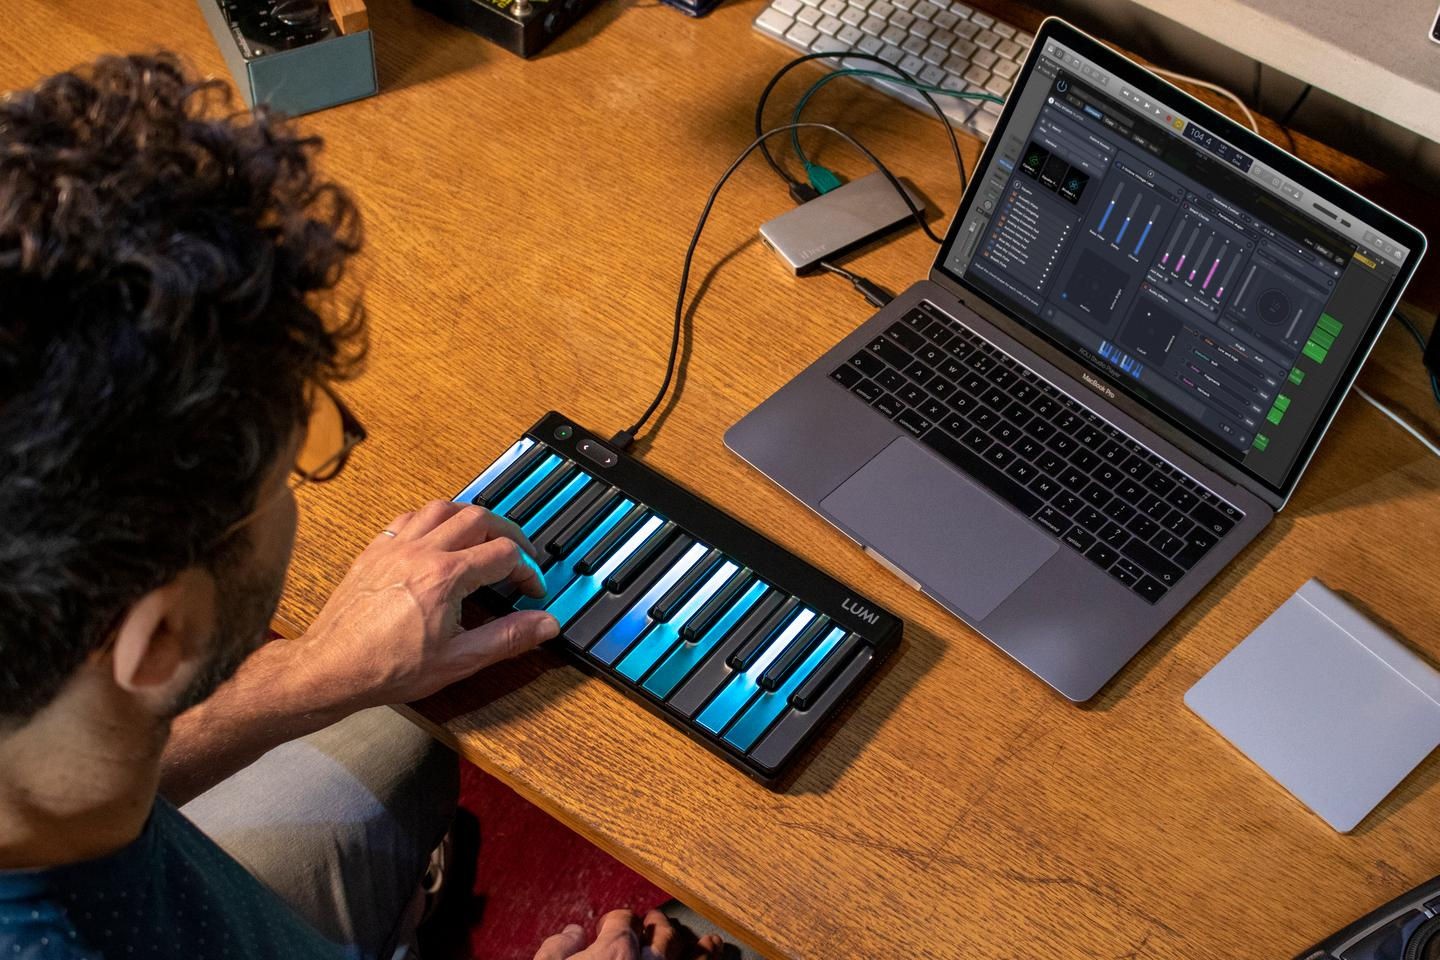 Scales, chords, and arpeggios can be illuminated in any key using the Roli Studio software